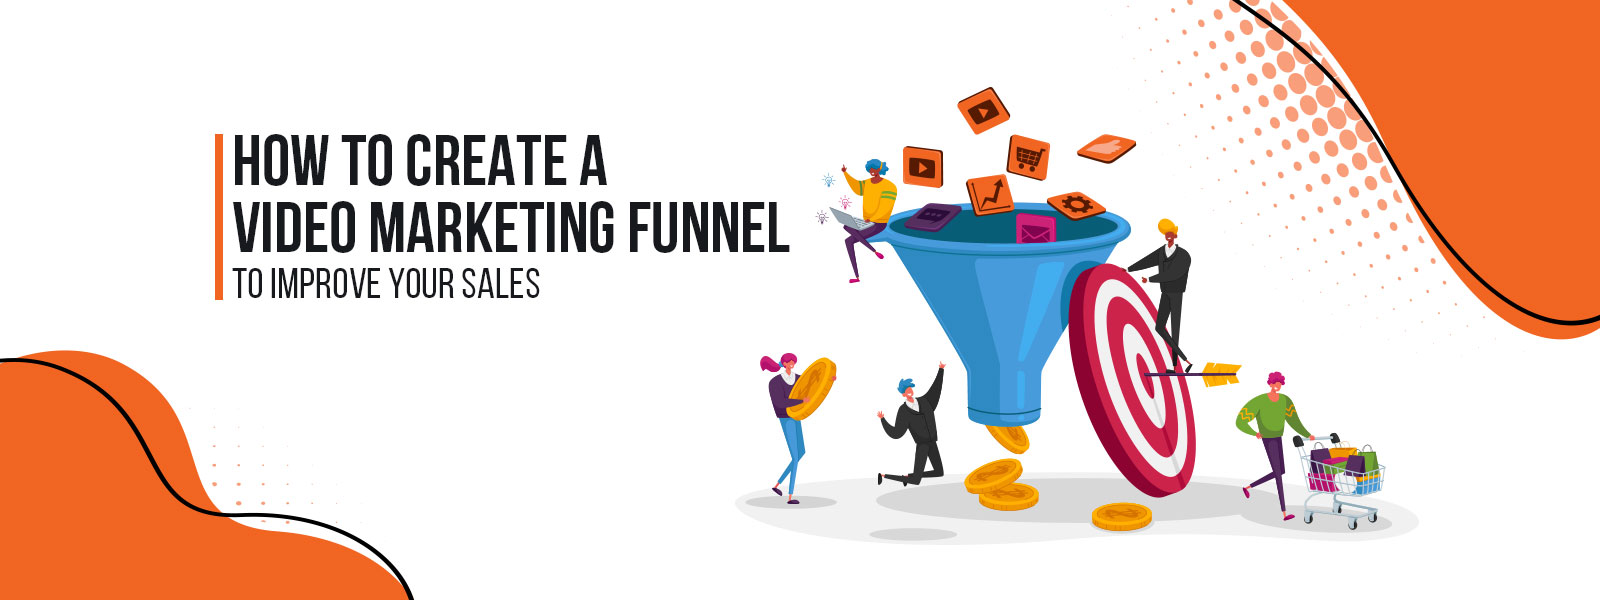 How To Create A Video Marketing Funnel To Improve Your Sales